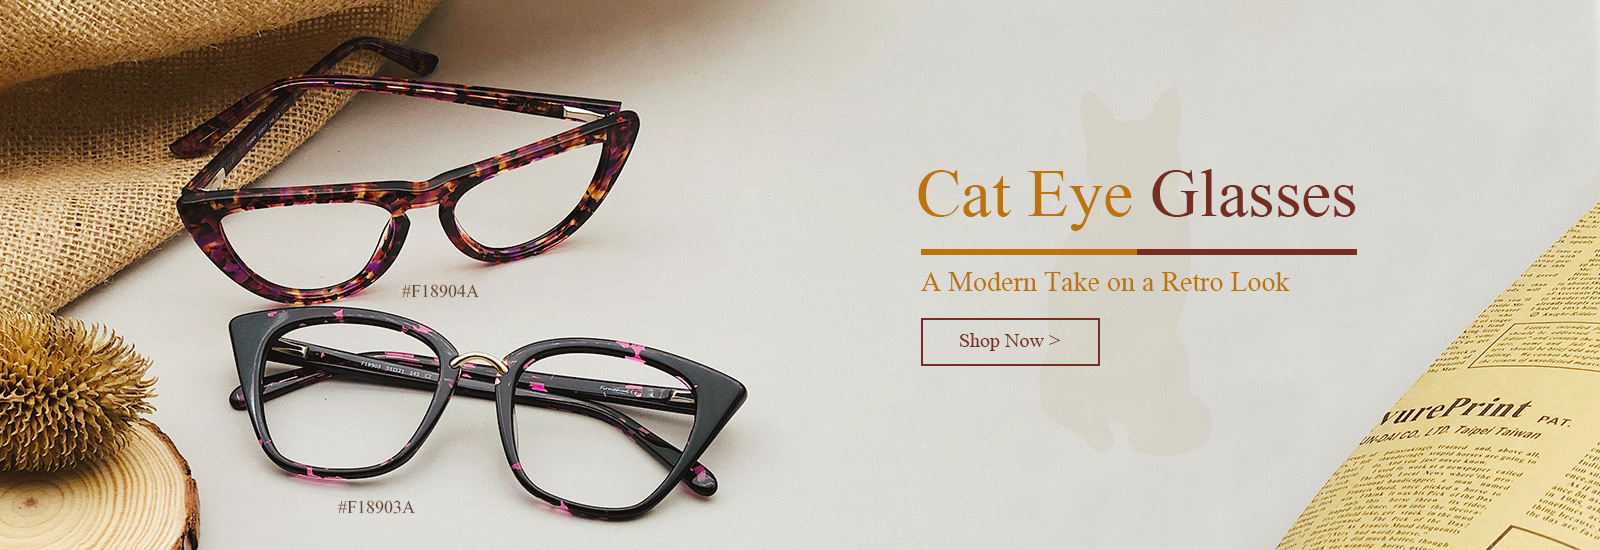 0c70fc83838 Firmoo.com - Your Preferred Online Eyewear Store - Glasses ...